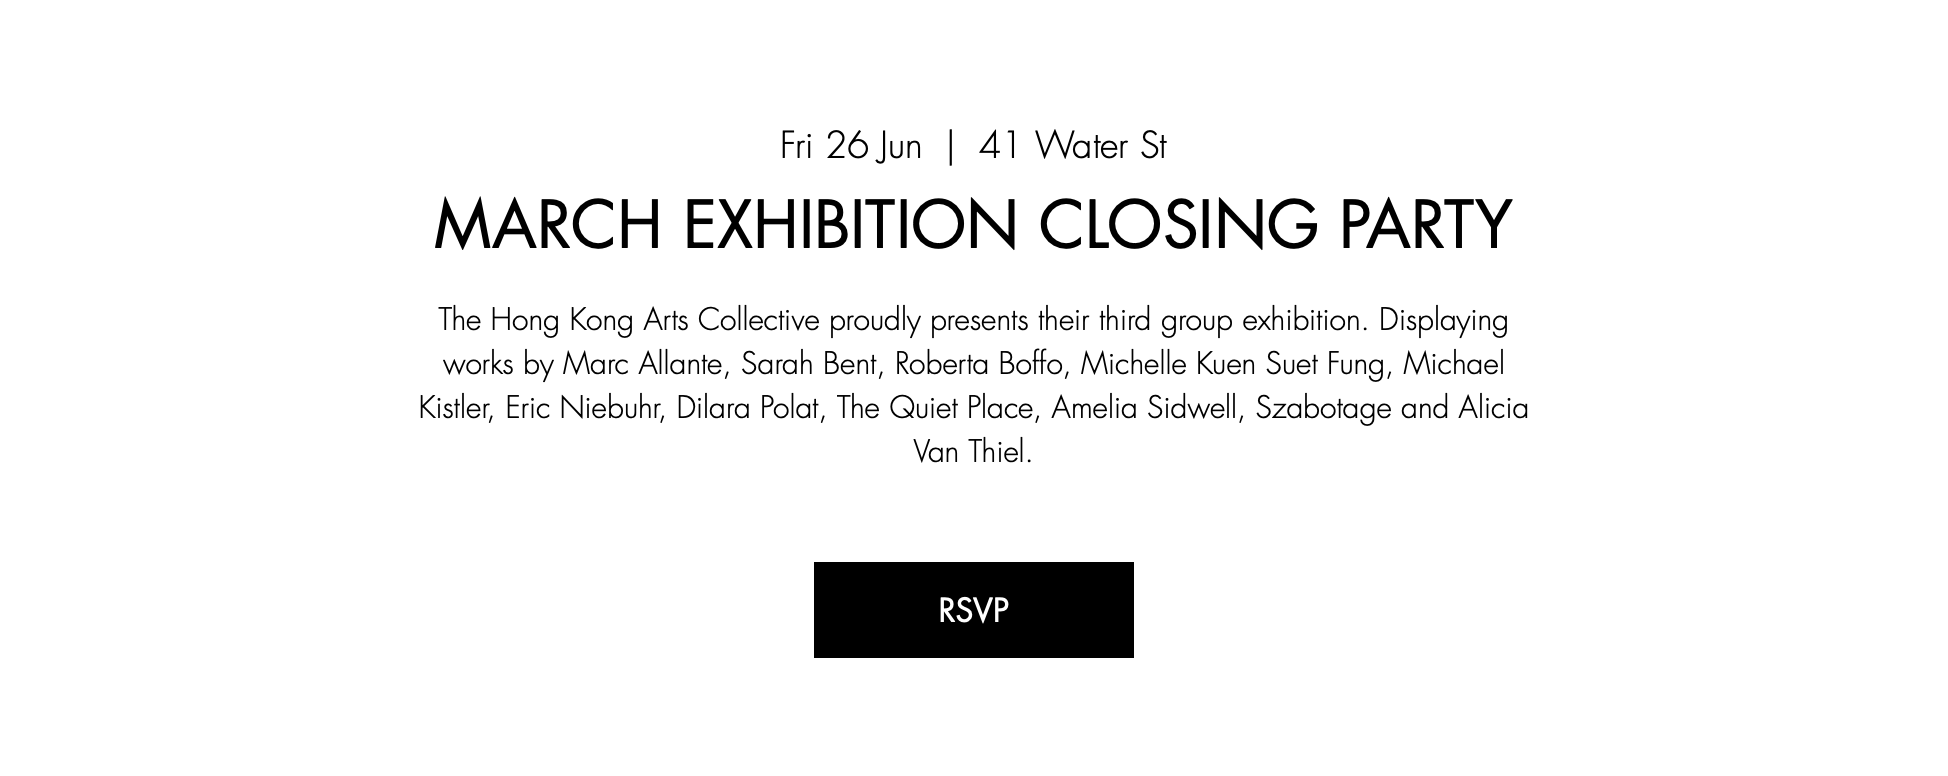 https://www.hongkongartscollective.com/event-details/march-exhibition-closing-party